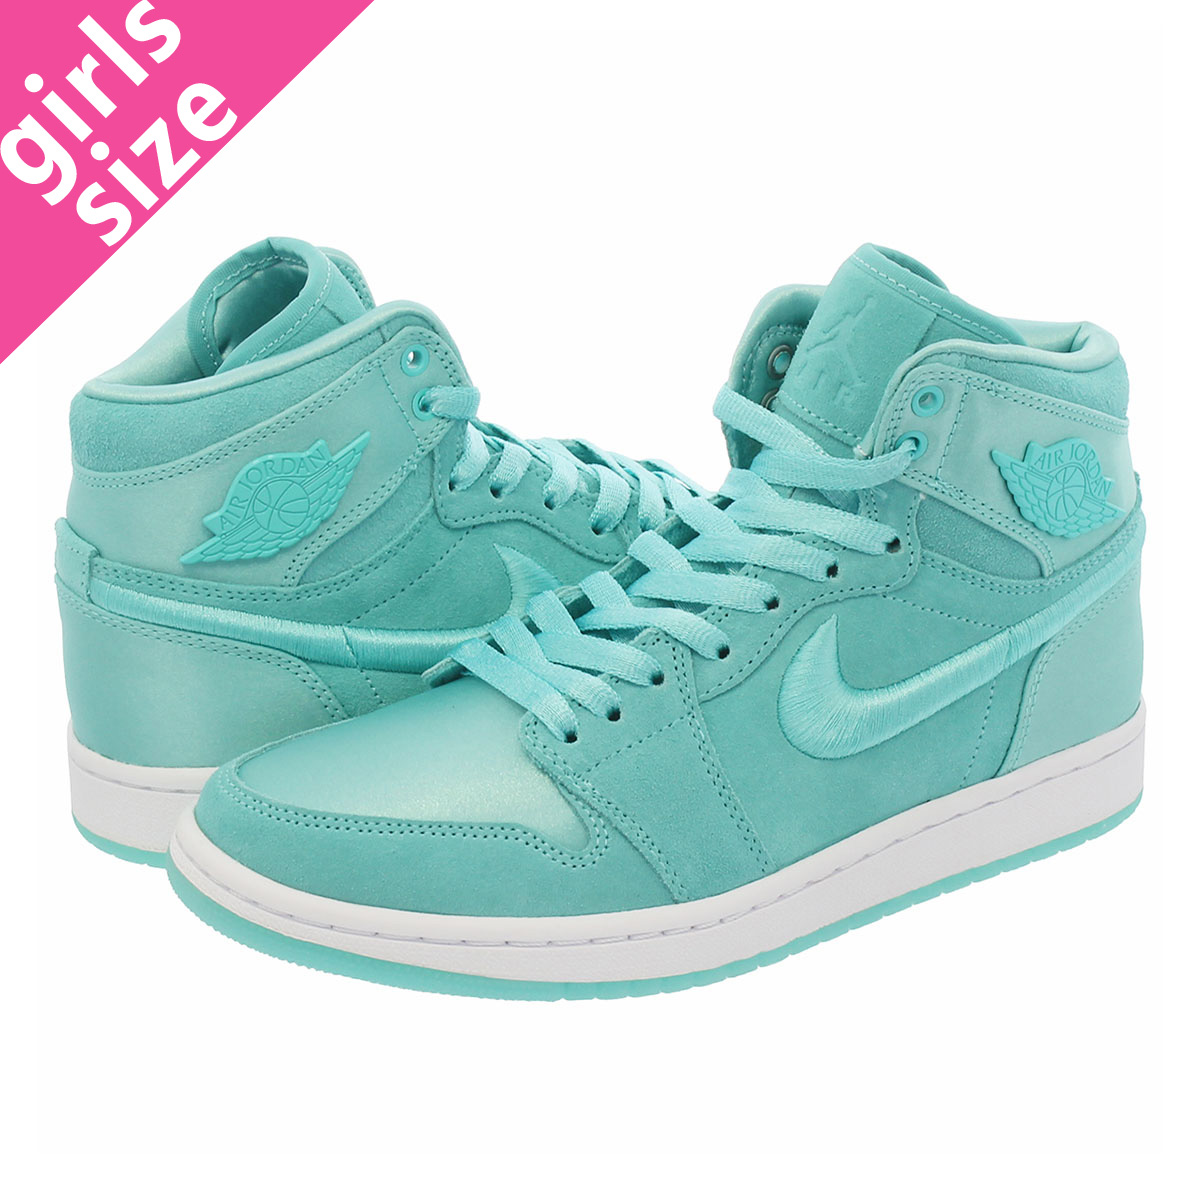 NIKE WMNS AIR JORDAN 1 RETRO HIGH 【SEASON OF HER】 ナイキ ウィメンズ エア ジョーダン 1 レトロ ハイ LIGHT AQUA/WHITE/METALLIC GOLD ao1847-440